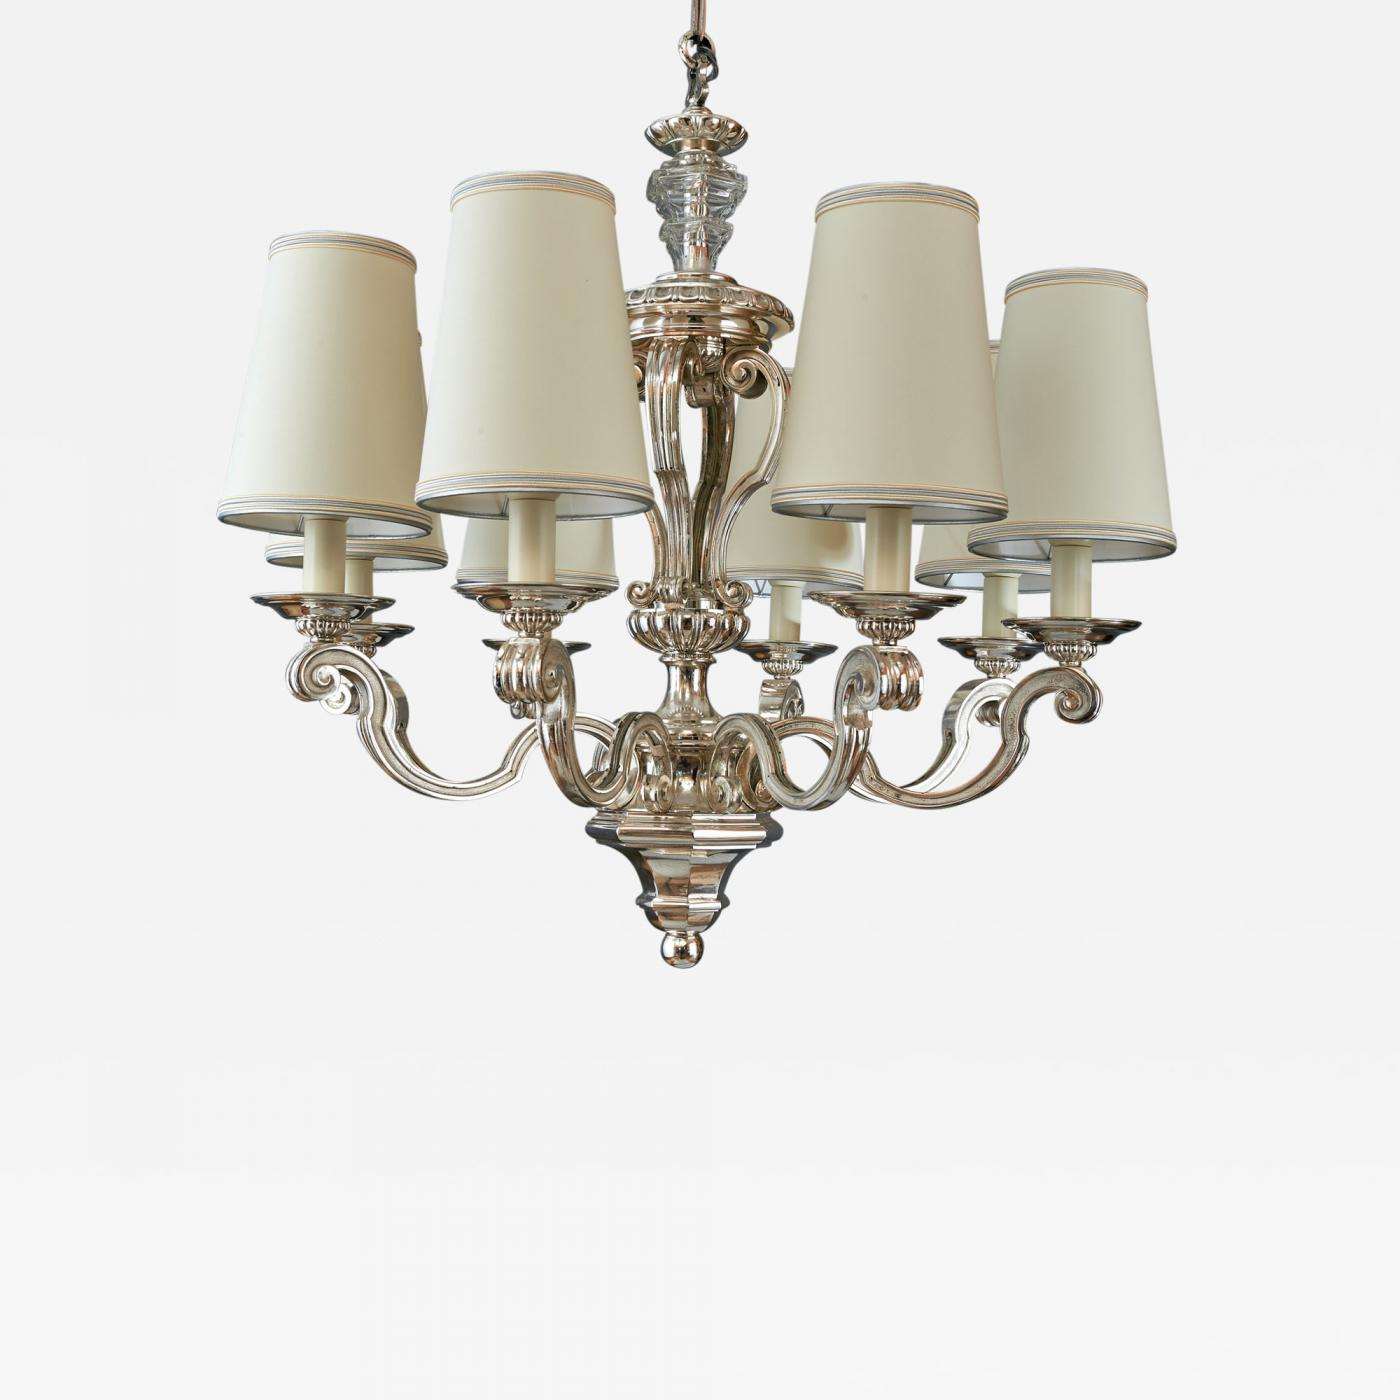 Silvered bronze neo classical chandelier france 1950s listings furniture lighting chandeliers and pendants aloadofball Image collections